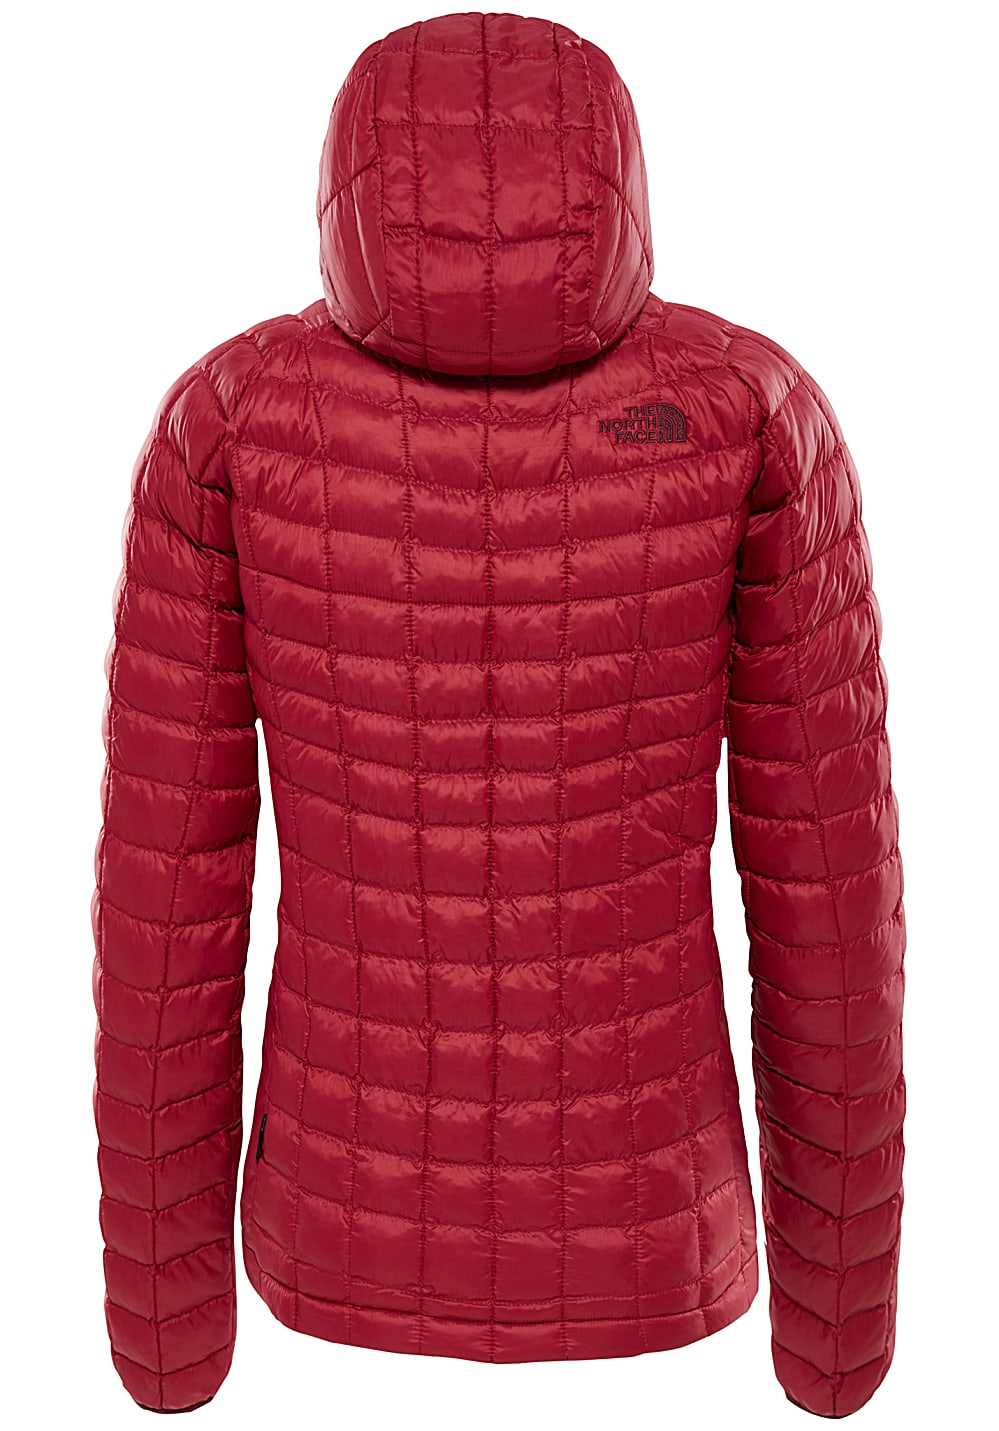 new product 2613c 0ef36 THE NORTH FACE Thermoball Sport - Outdoorjacke für Damen - Rot